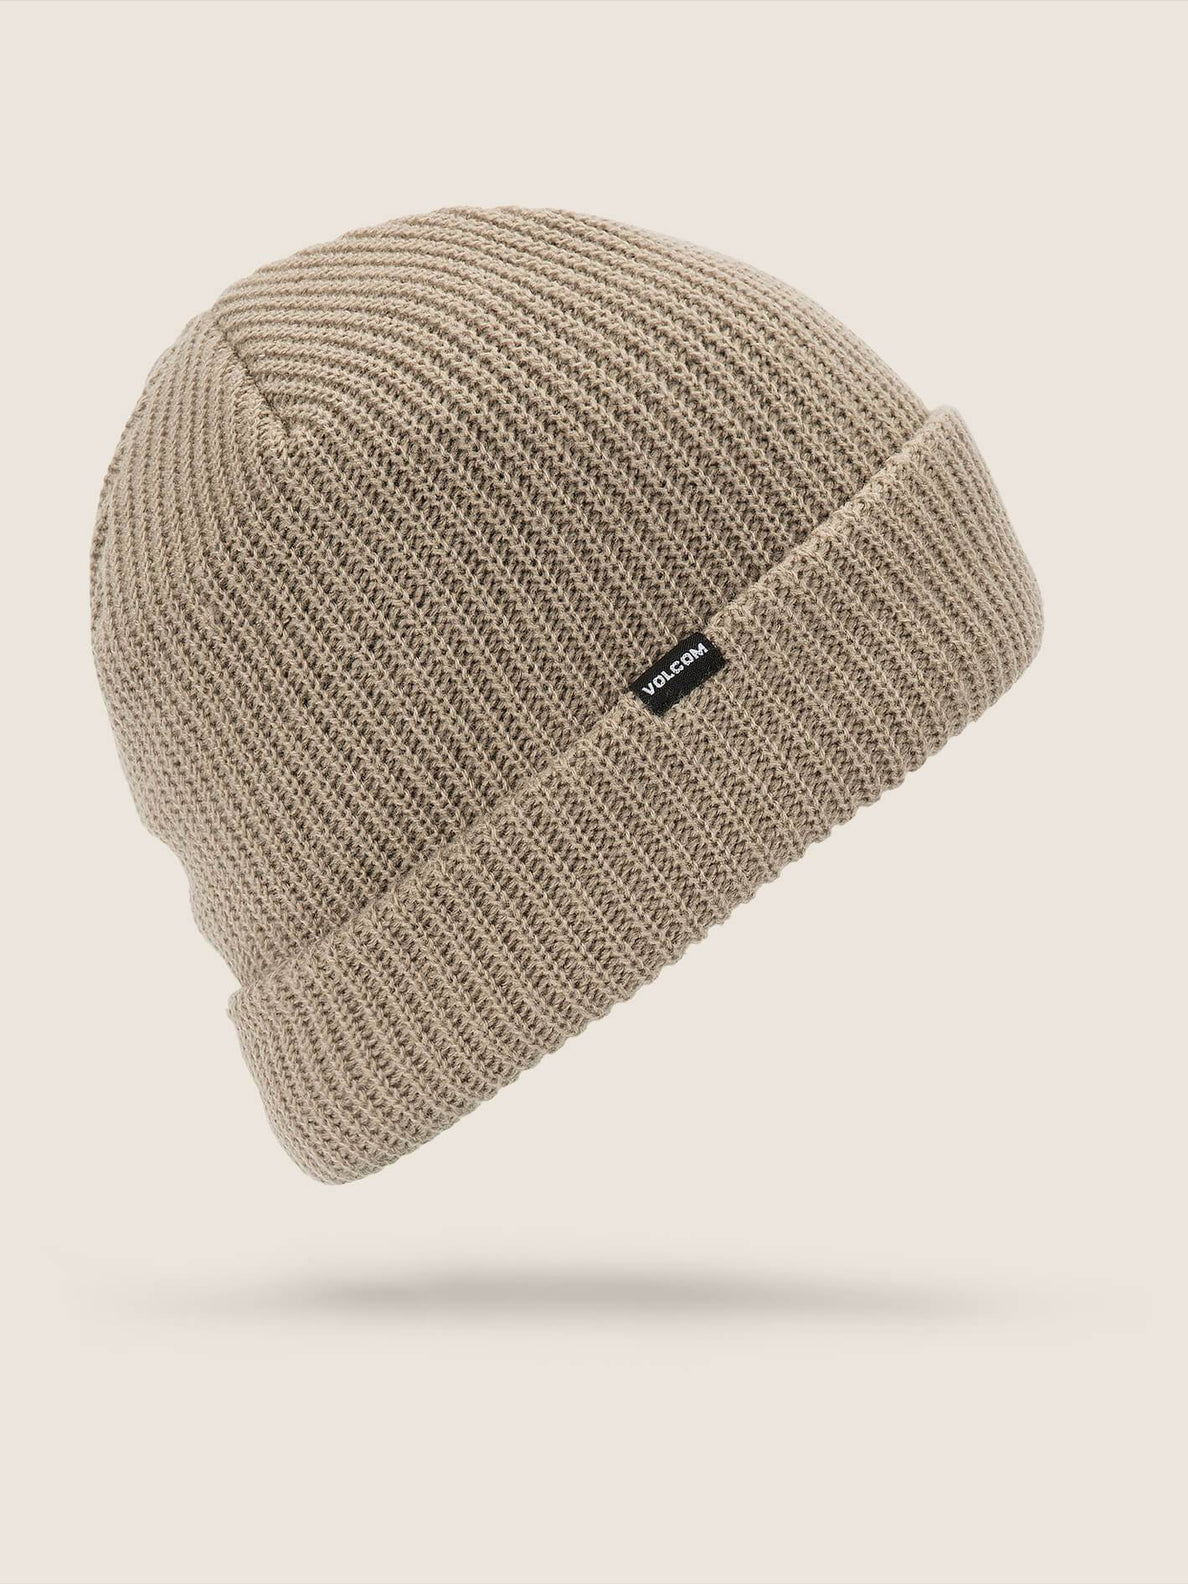 Sweep Lined Beanie - Snowboarding  4b8c4ced3c3